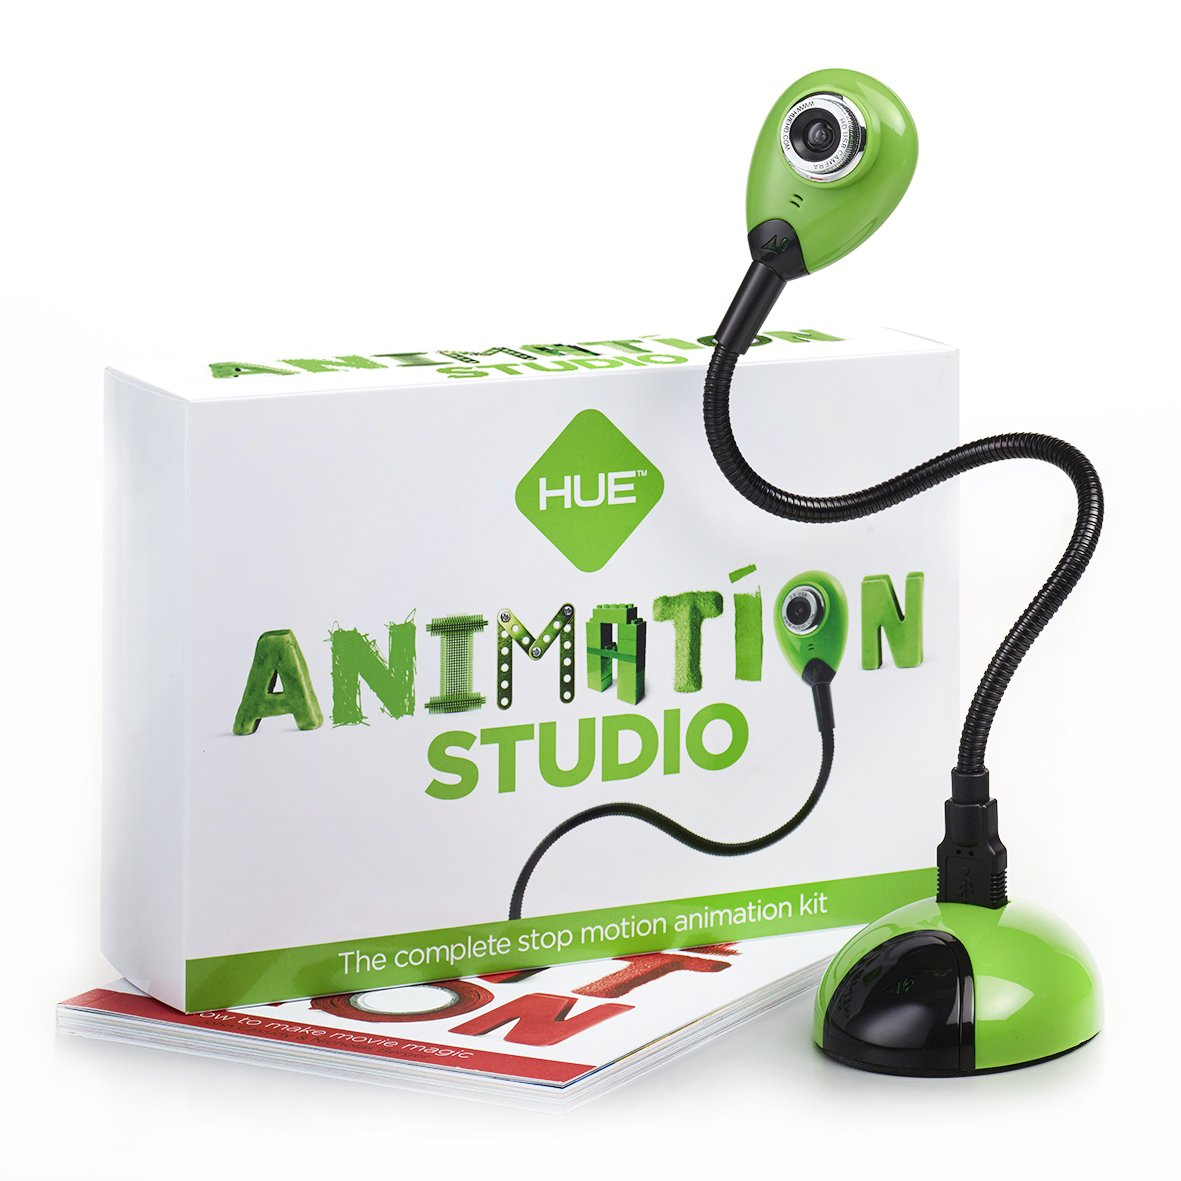 HUE Estudio de Animació n (Verde) para PCs Windows y Apple Mac: incluye cá mara, software y libro en INGLÉ S software y libro en INGLÉS AS0003